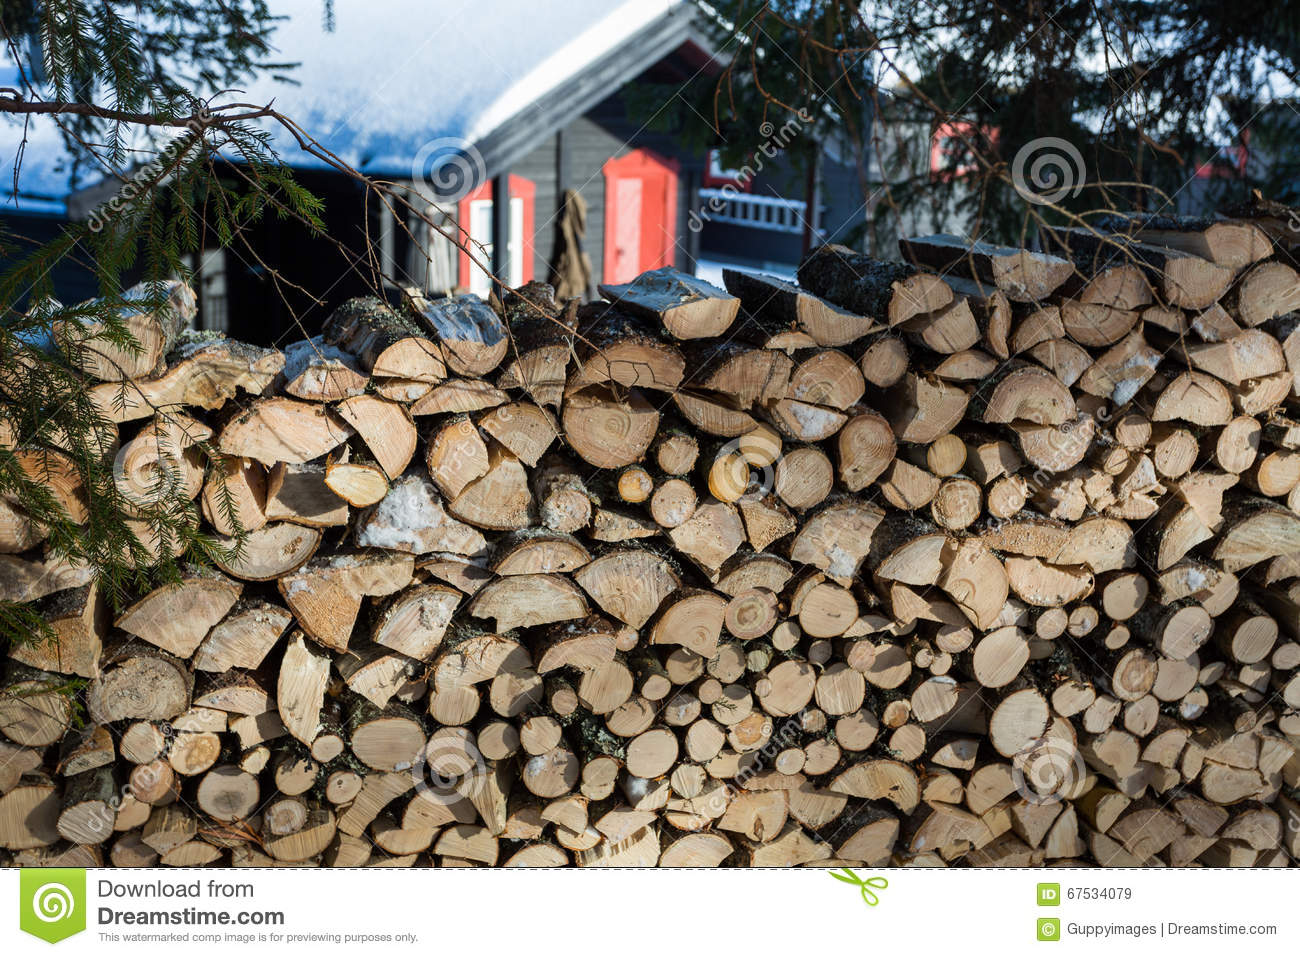 Close up of freshly chopped wood pile with a cabin in the background